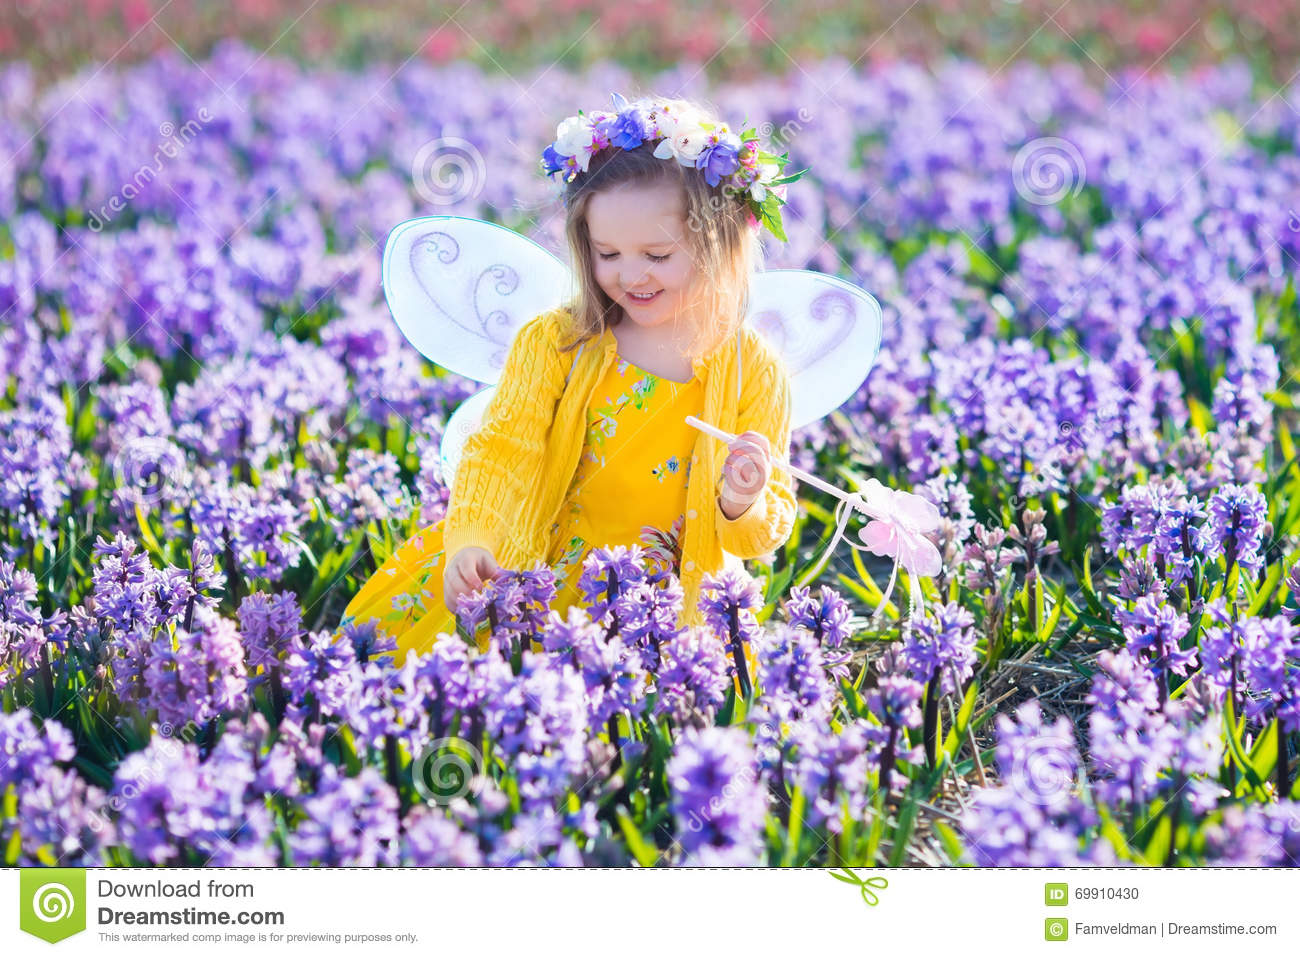 Exceptional Beautiful Girl Playing In Blooming Hyacinth Flower Field. Kids Princess  Birthday Party With Fairy Costume, Butterfly Wings And Magic Wand.